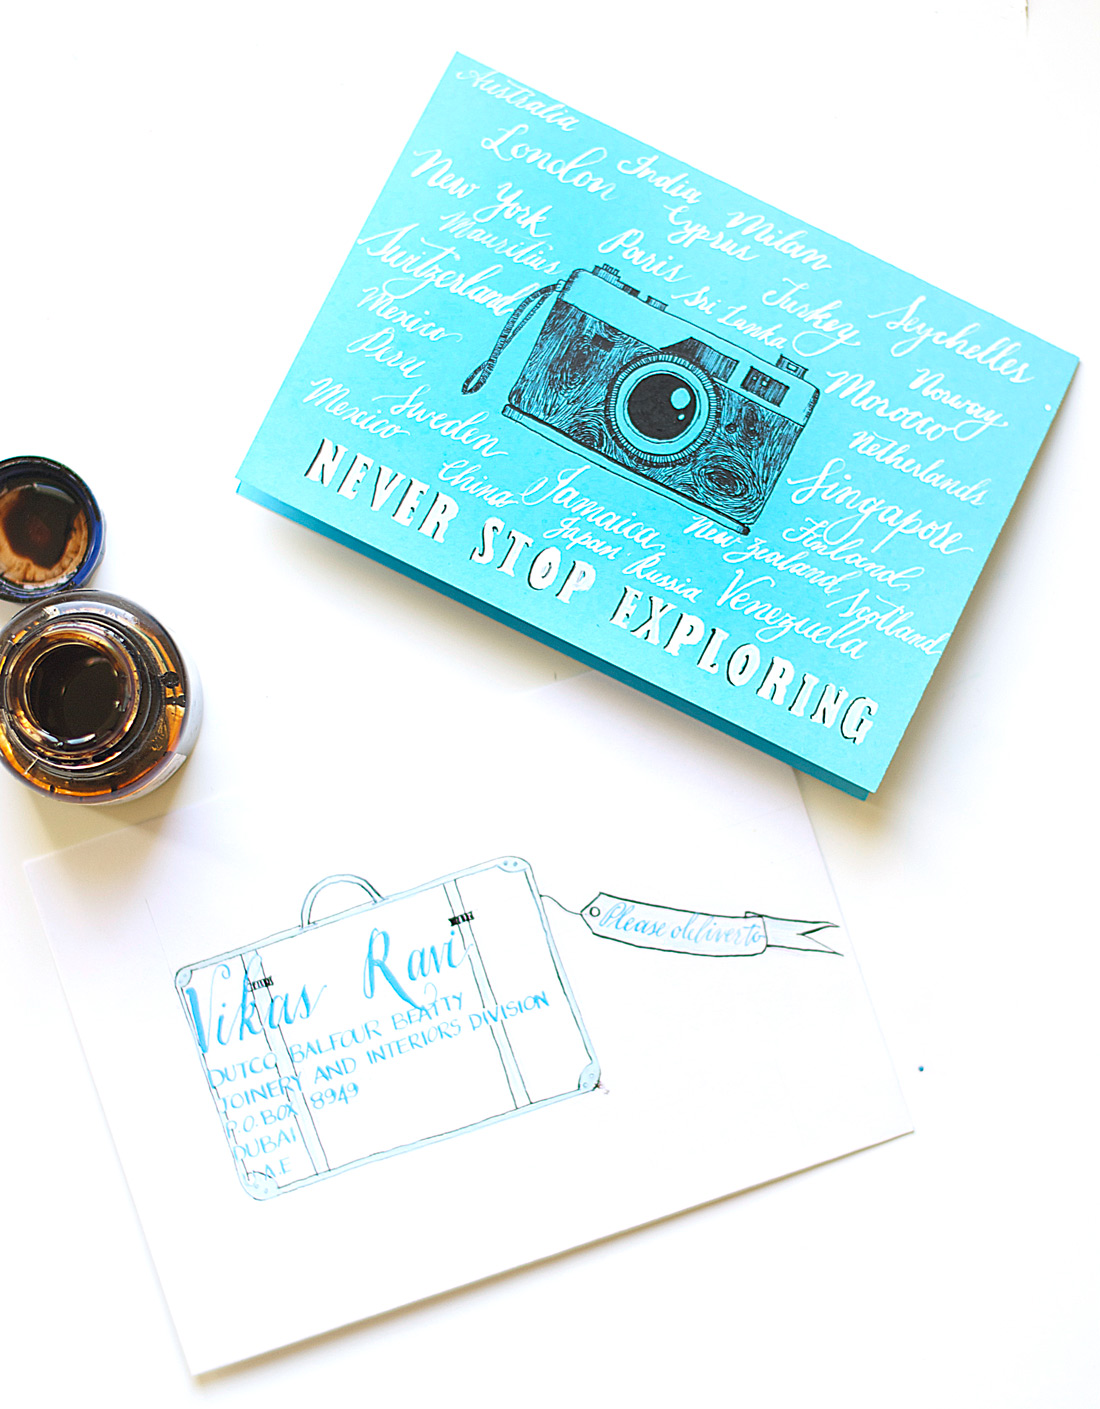 Learn how to create a travel birthday card in this tutorial by Zakkiya Hamza of Inkstruck Studio